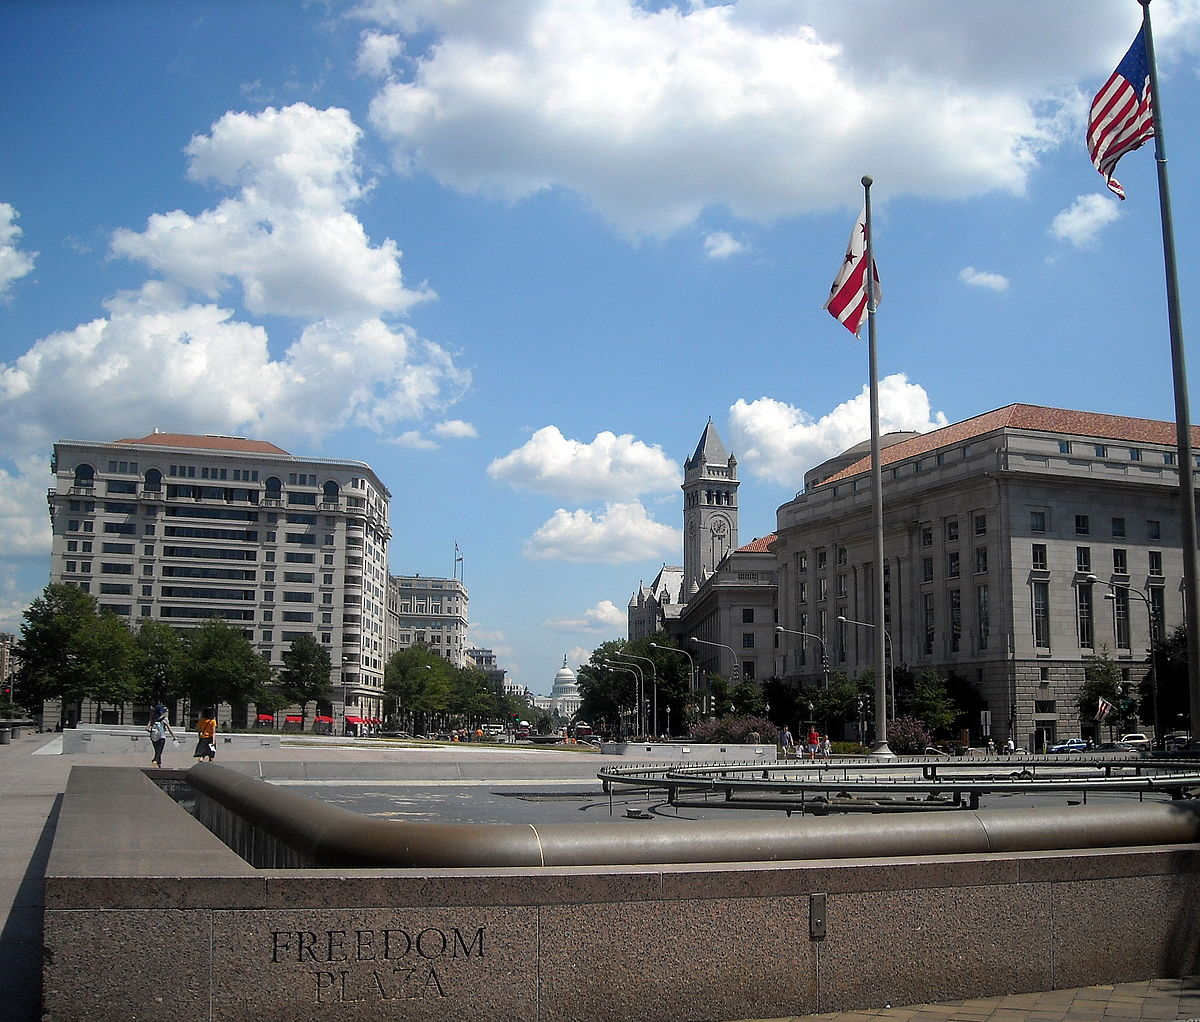 Freedom Plaza Wikipedia